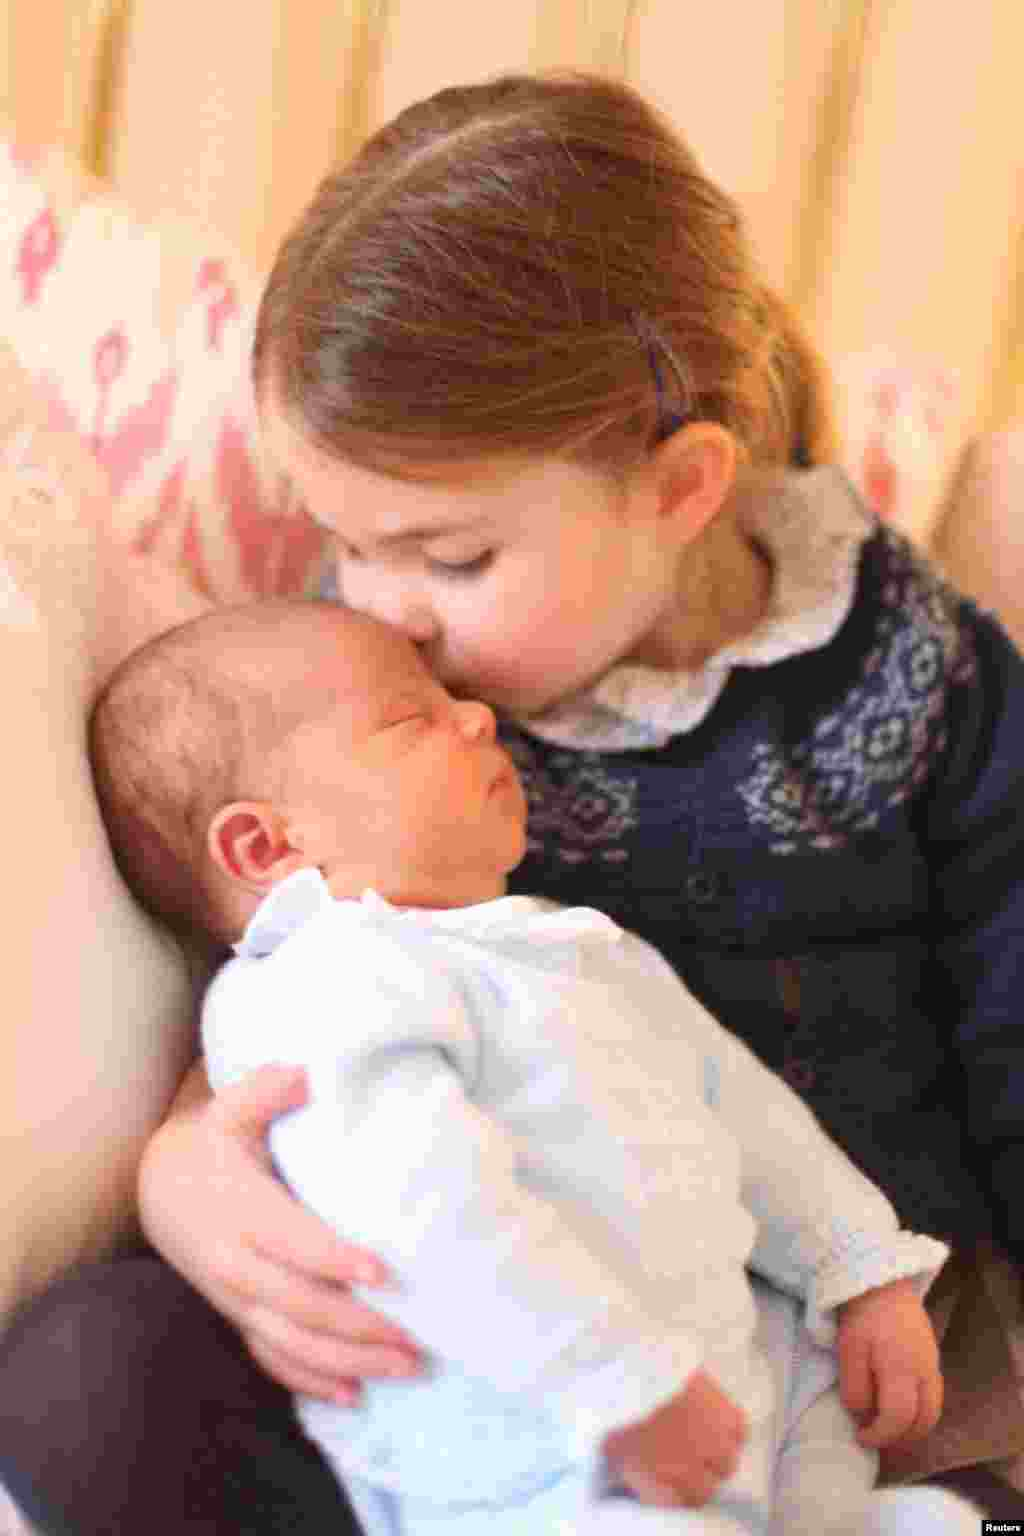 Britain's Princess Charlotte and her brother Prince Louis are seen in this photograph released by Kensington Palace, and taken by Britain's Catherine, Duchess of Cambridge, on Princess Charlotte's third birthday, at Kensington Palace in London.